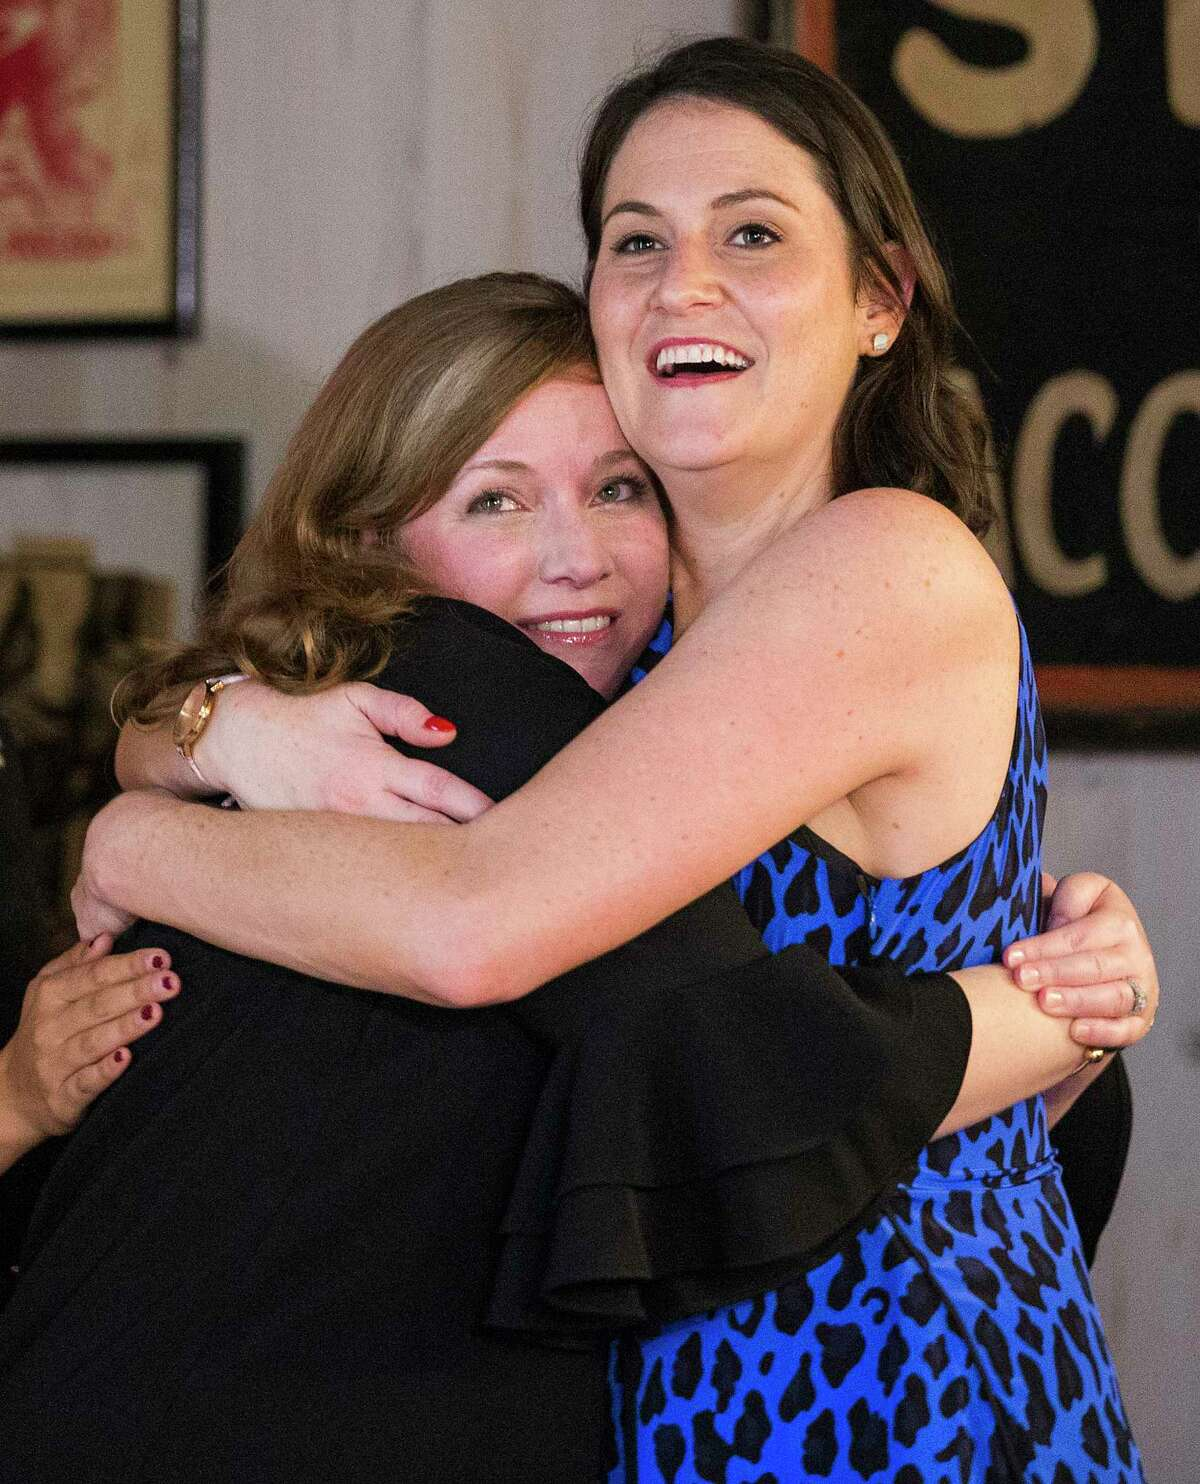 Democrat Lizzie Pannill Fletcher, left, celebrates her win over Republican John Culberson in the race for the 7th Congressional District seat in the House of Representatives, with her campaign manager Erin Minceberg on Tuesday, Nov. 6, 2018, in Houston.